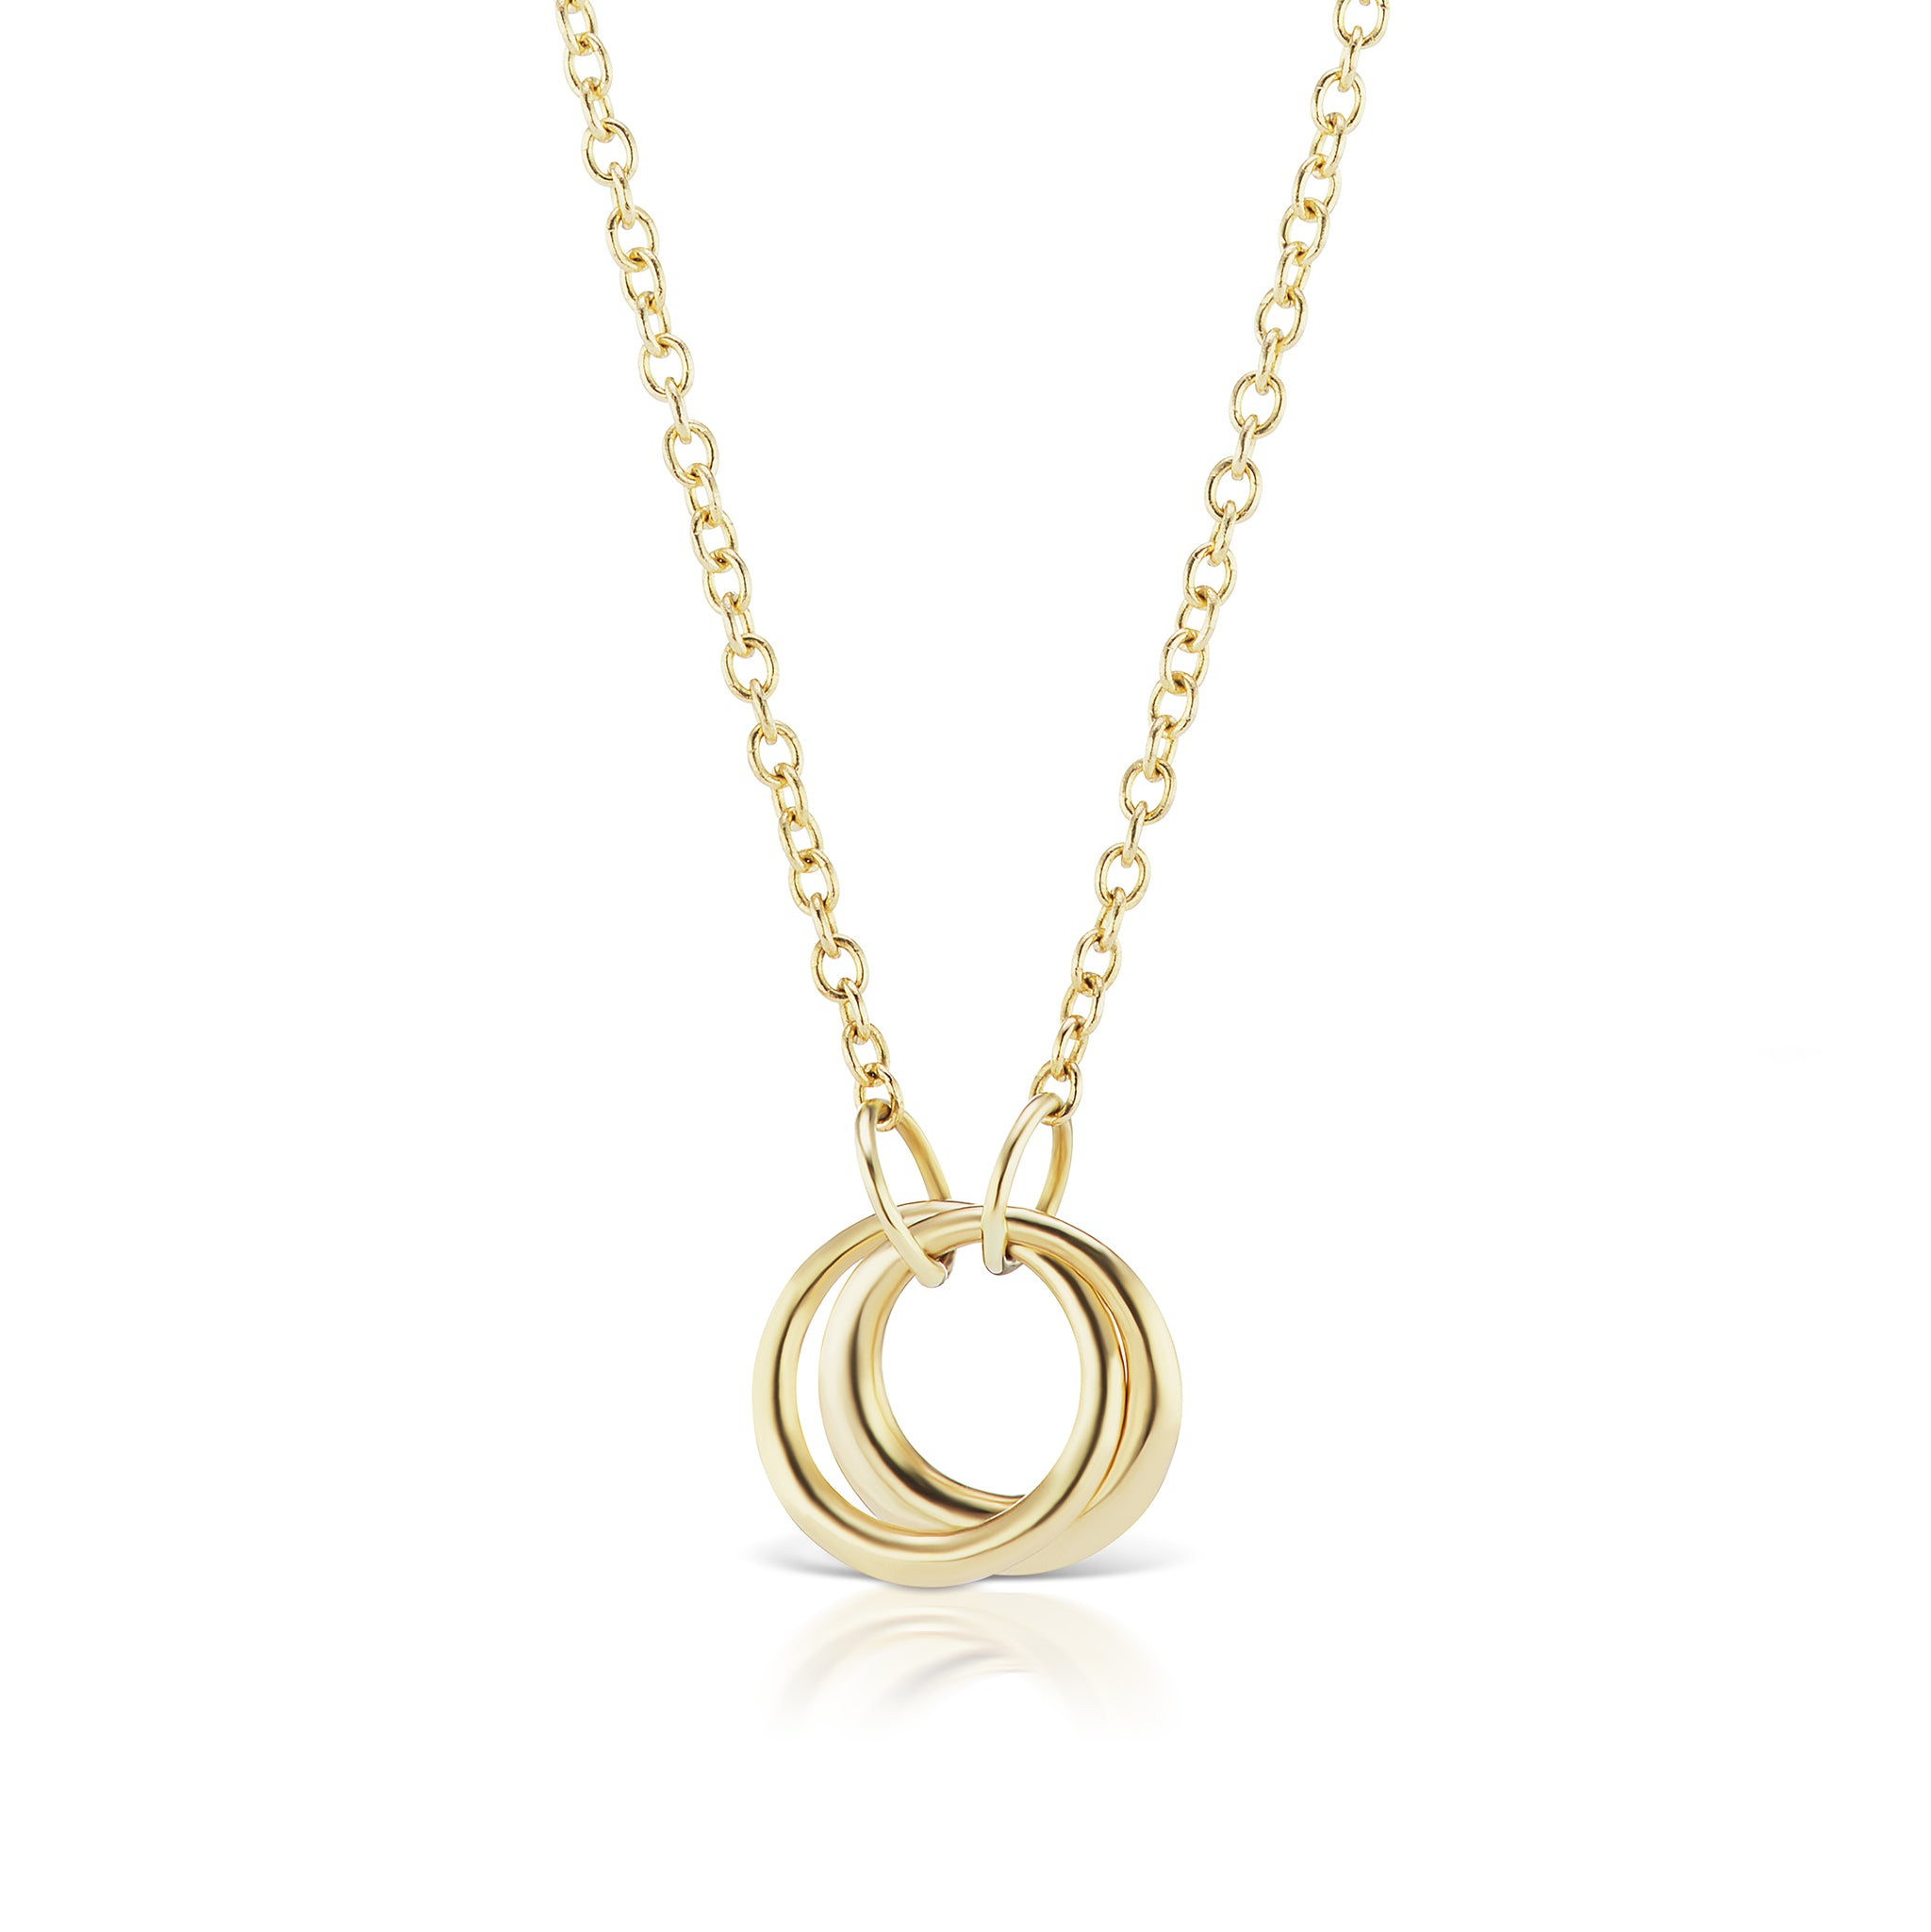 The Gold Encircle Necklace